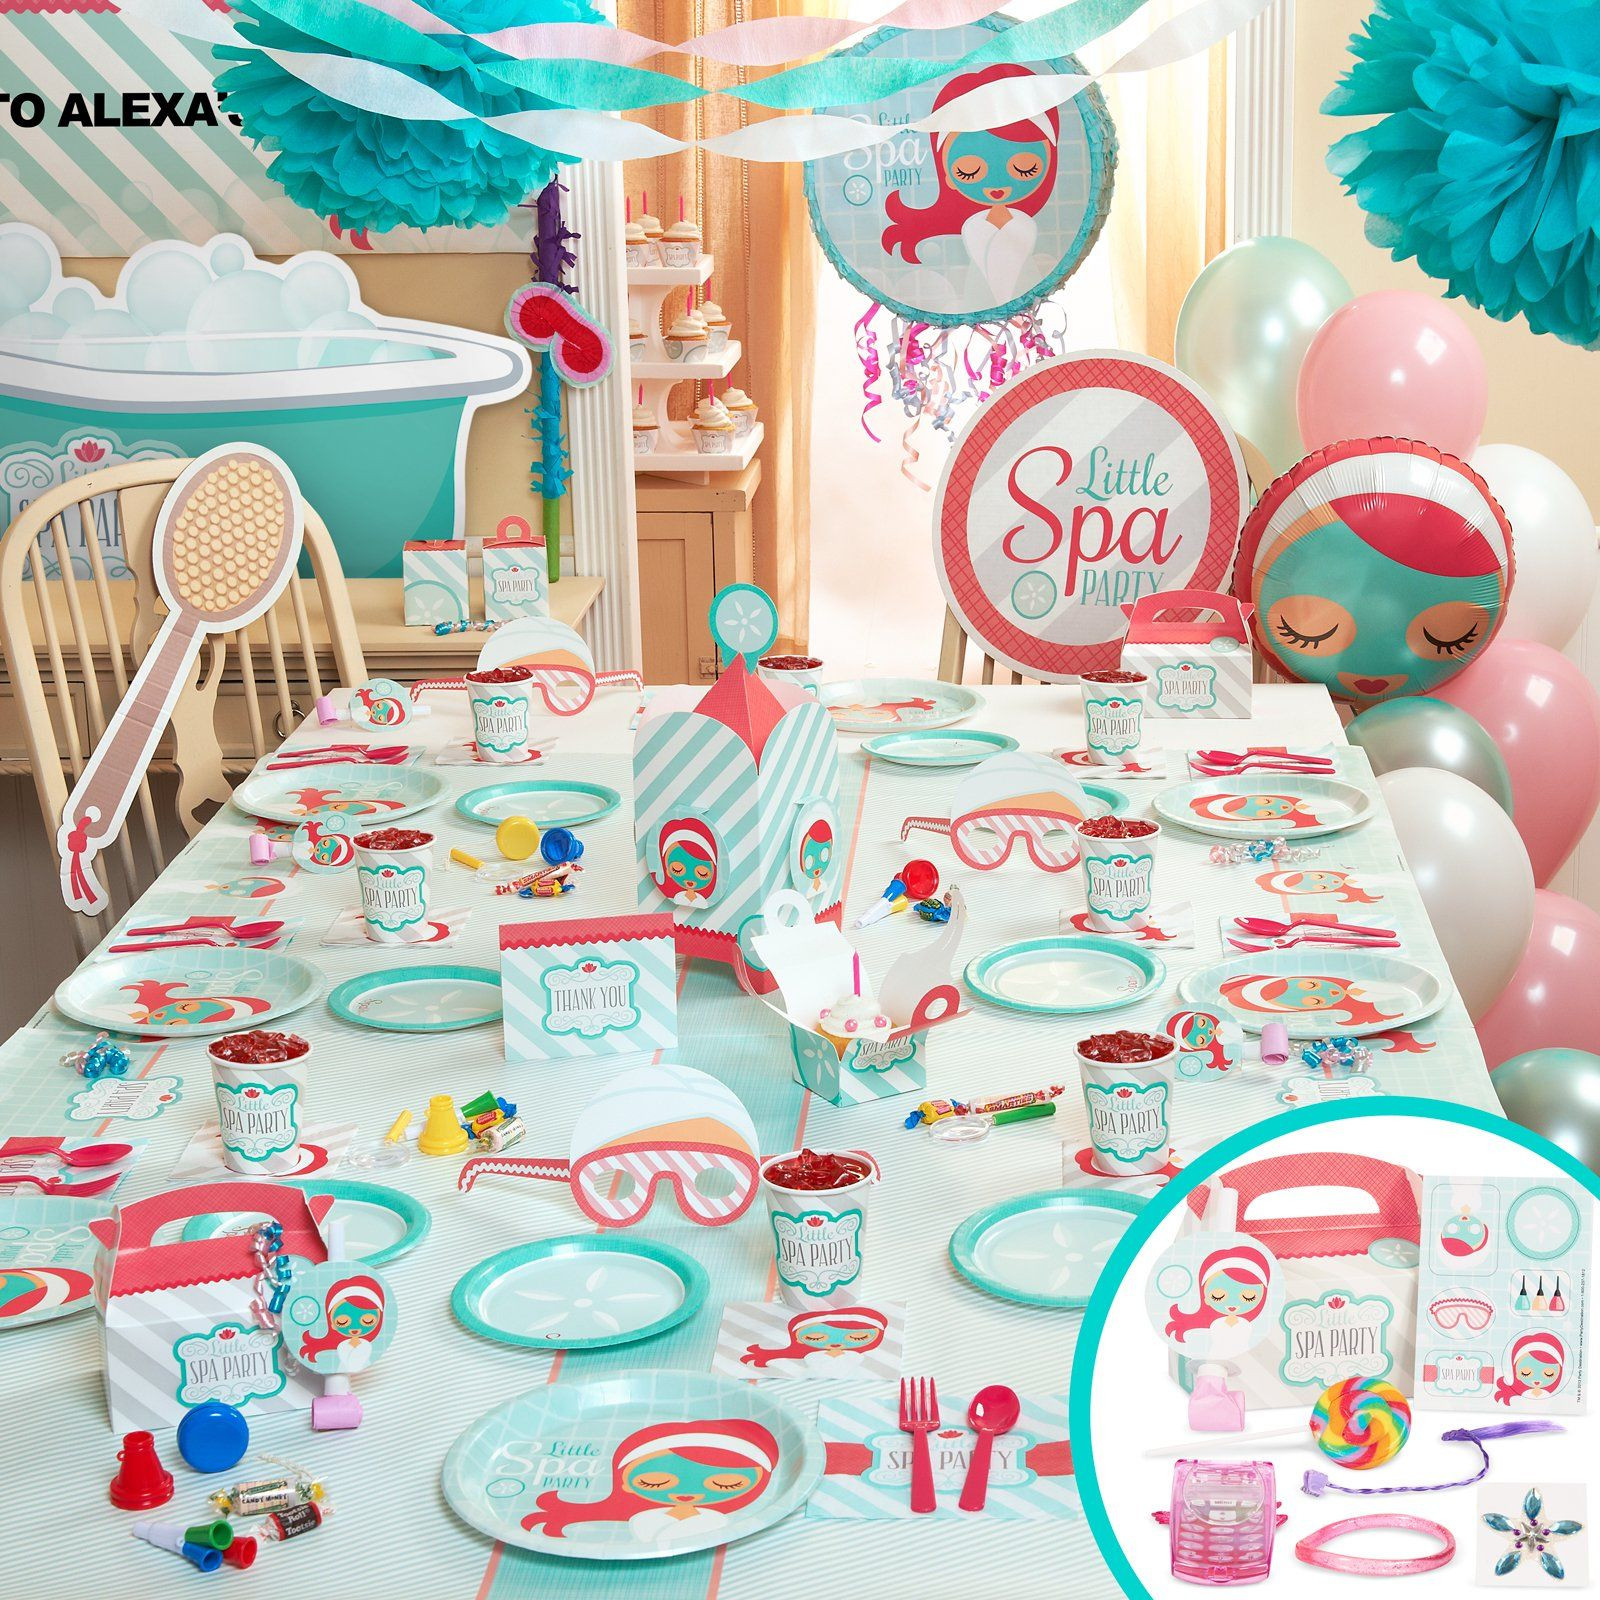 Kids Spa Party Favors  Spa Party Favors for Tweens